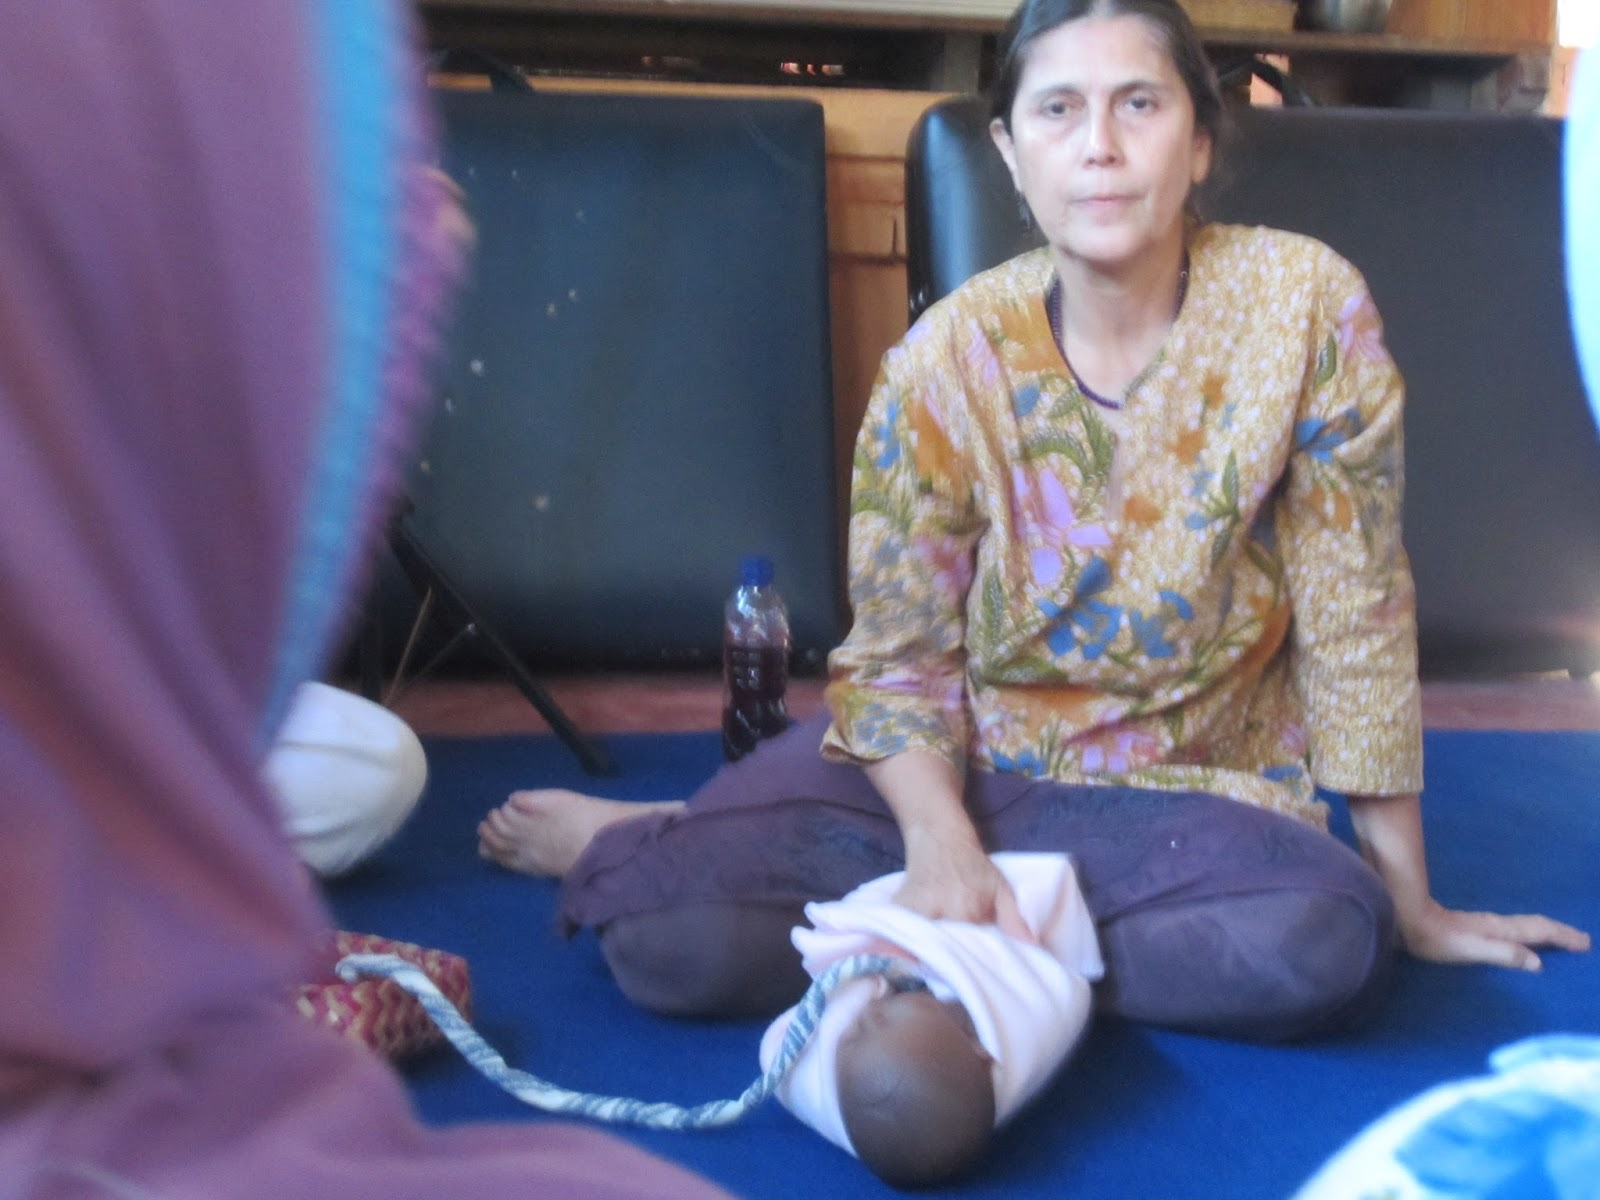 Lotus birth of a child in Bali: the story of a mother 66